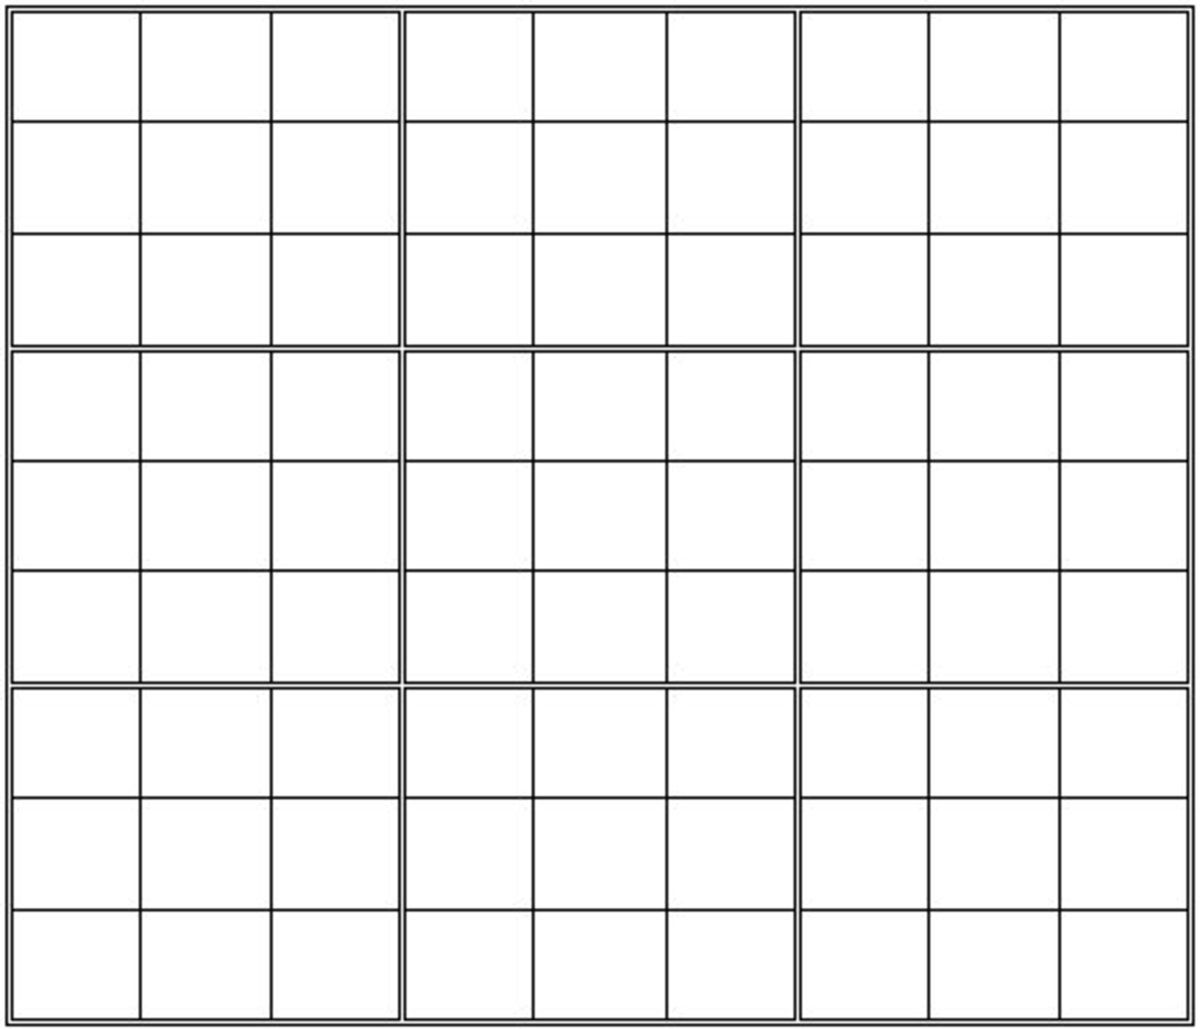 Shocking image intended for sudoku printable grids